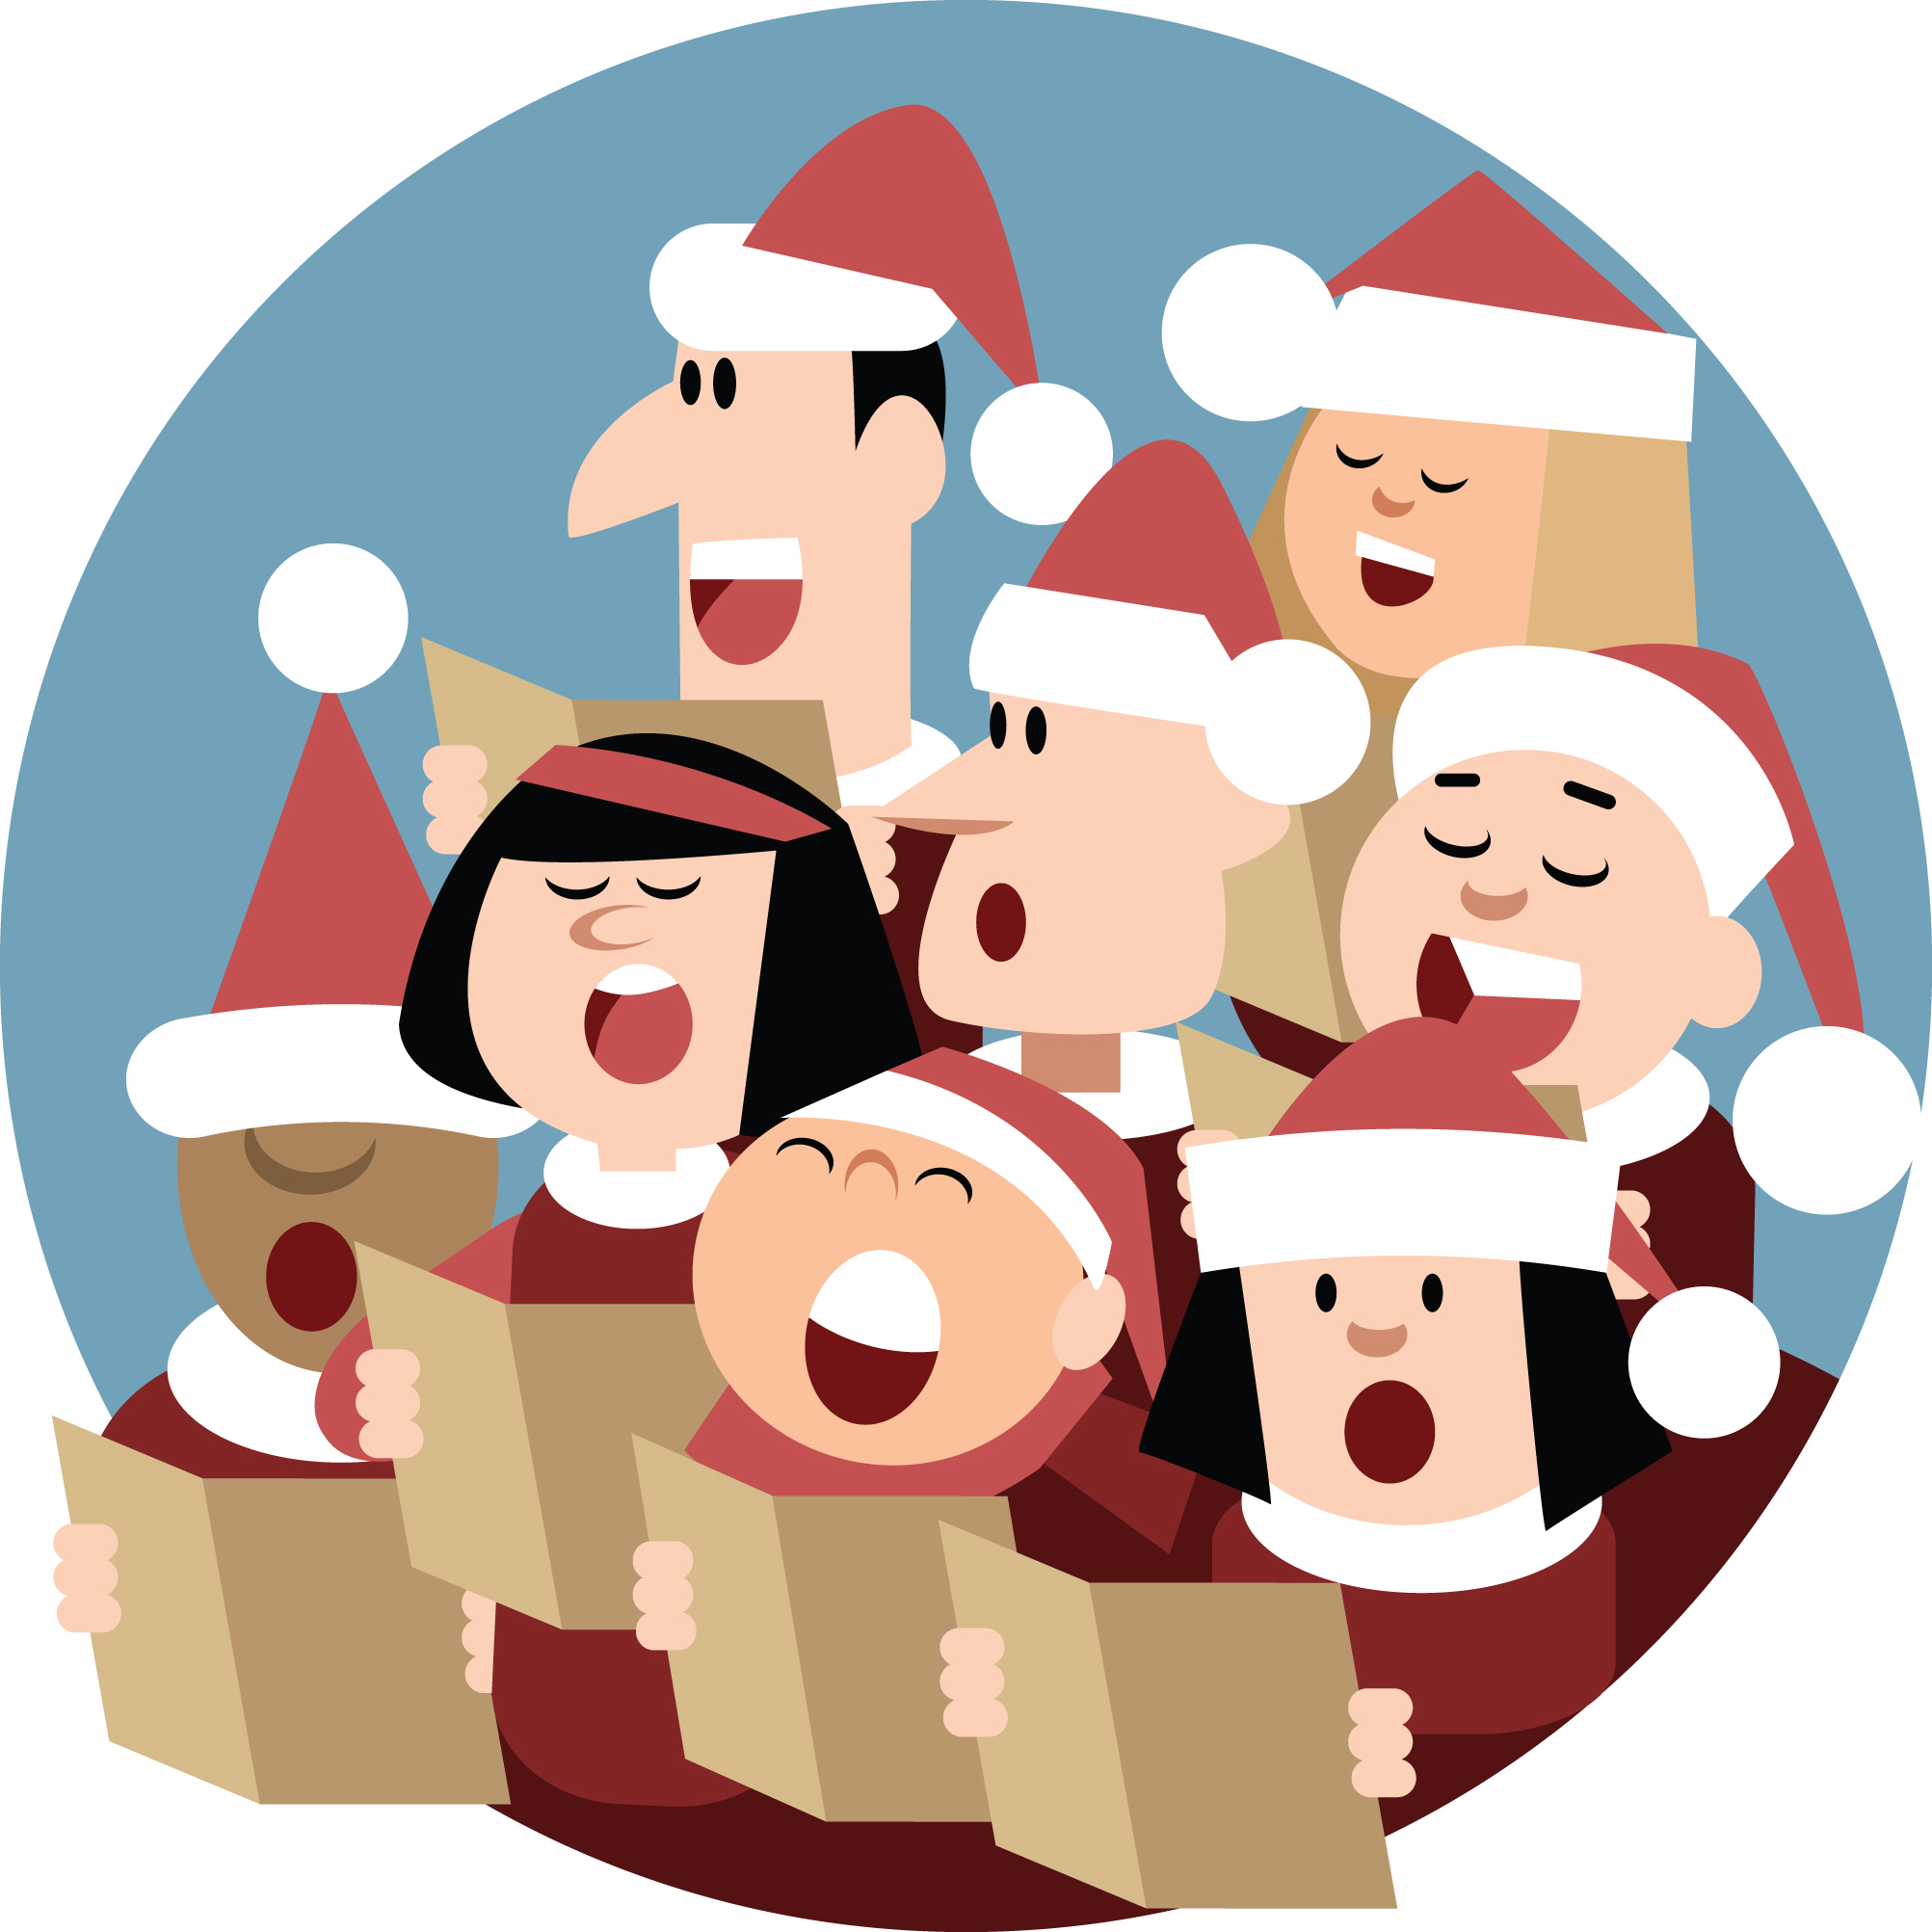 Spreading joy is a. Caroling clipart group